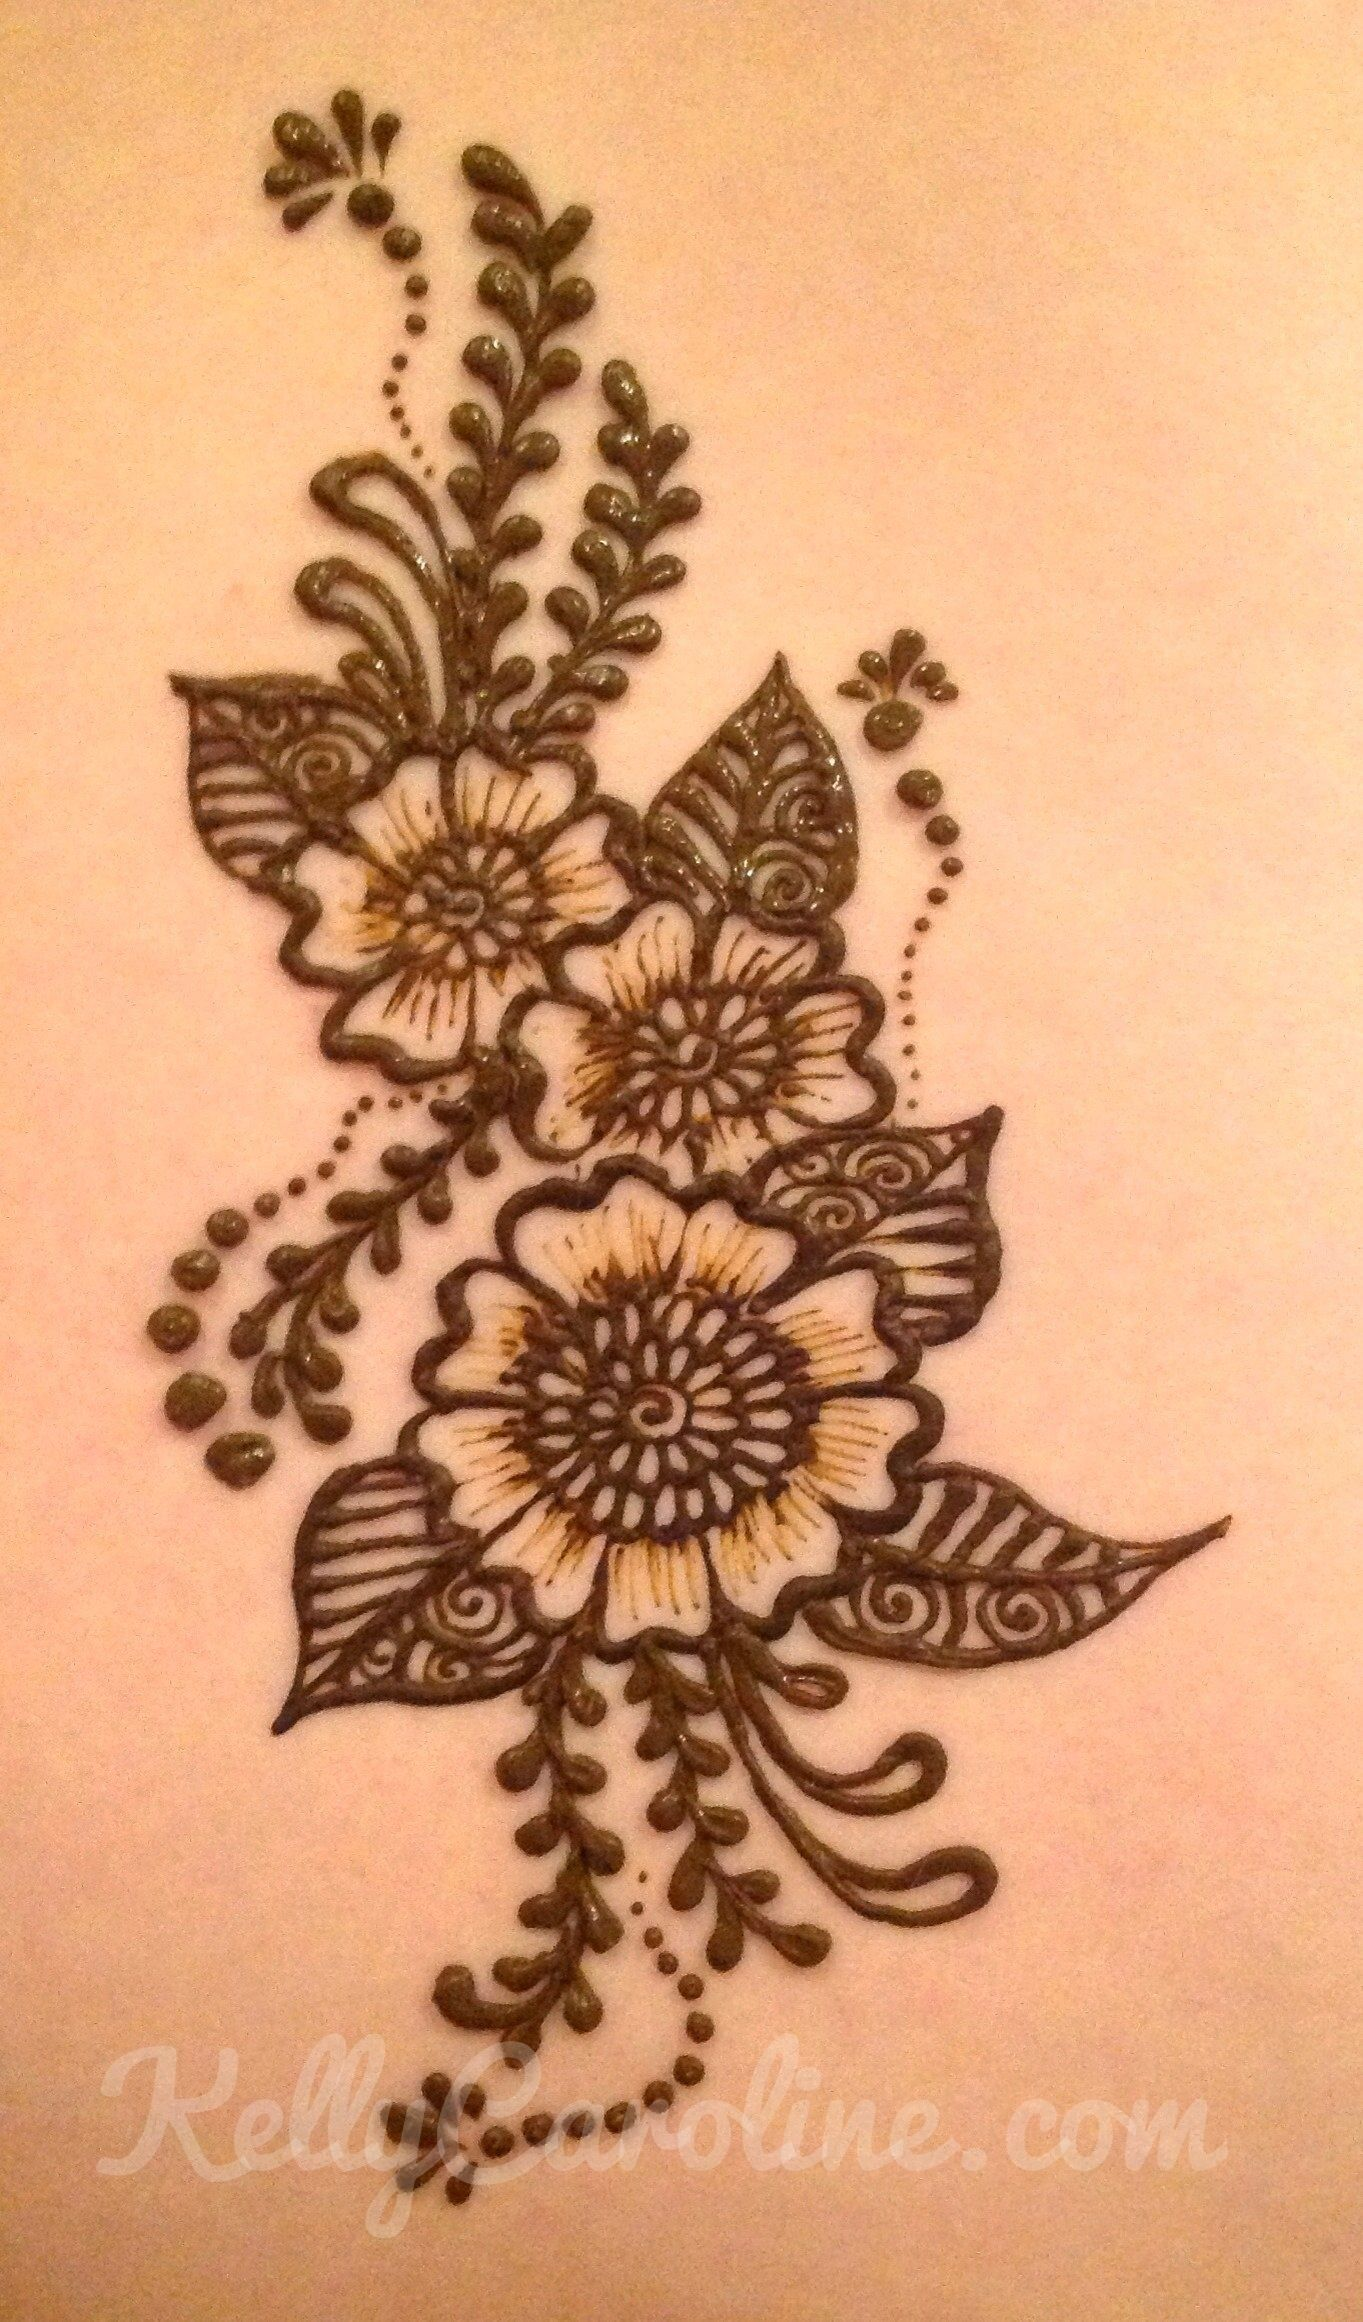 kelly caroline michigan henna tattoo artist henna flower tattoo c s d s pinterest. Black Bedroom Furniture Sets. Home Design Ideas